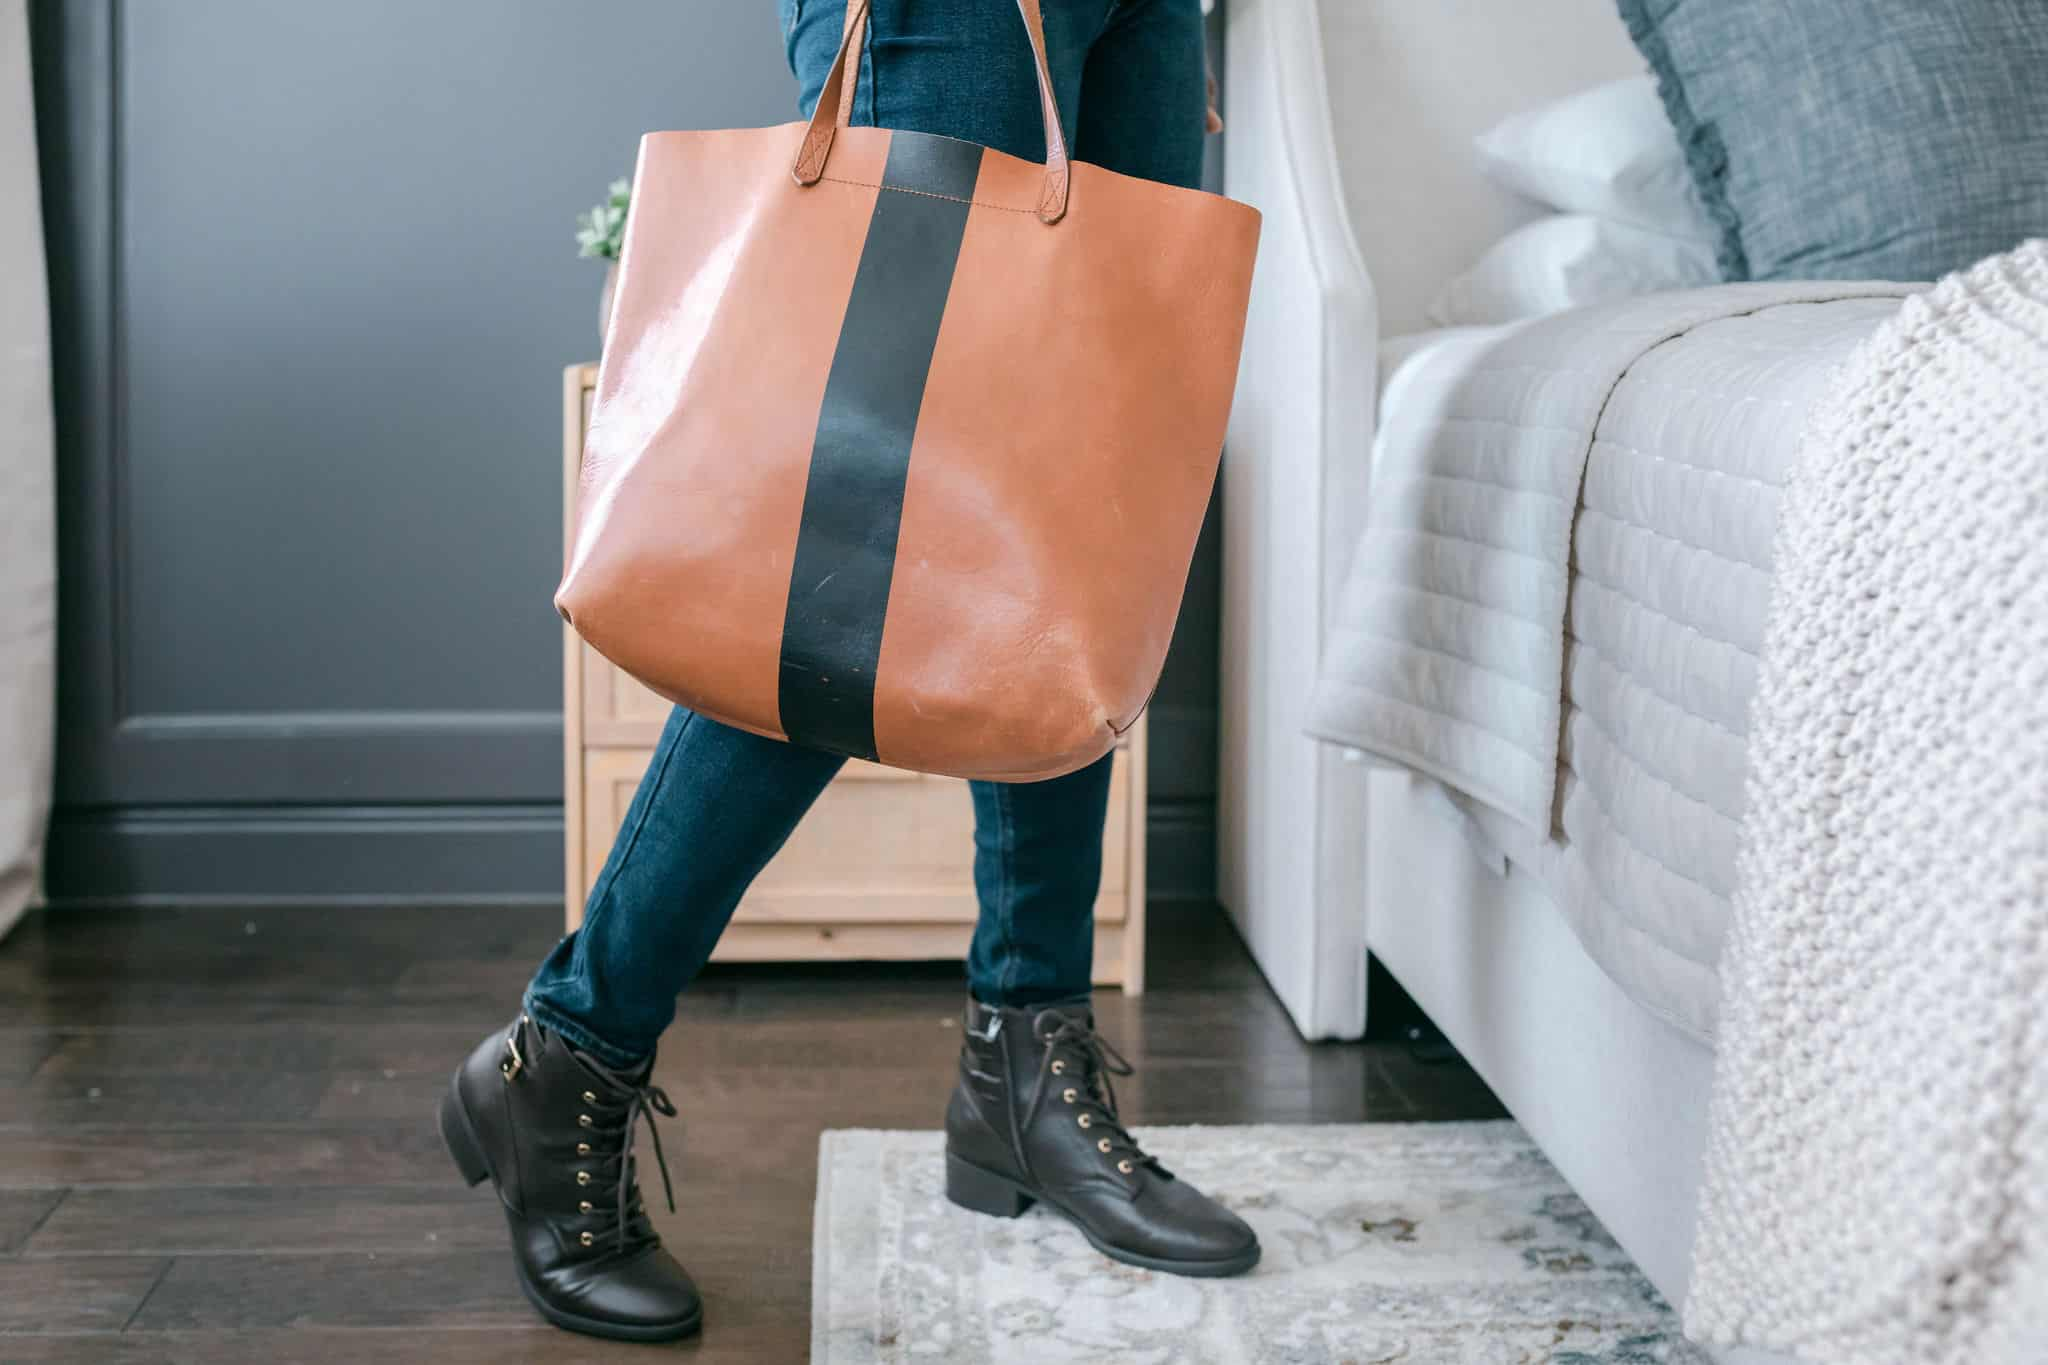 Modeling with a tote bag in bedroom with ankle boots